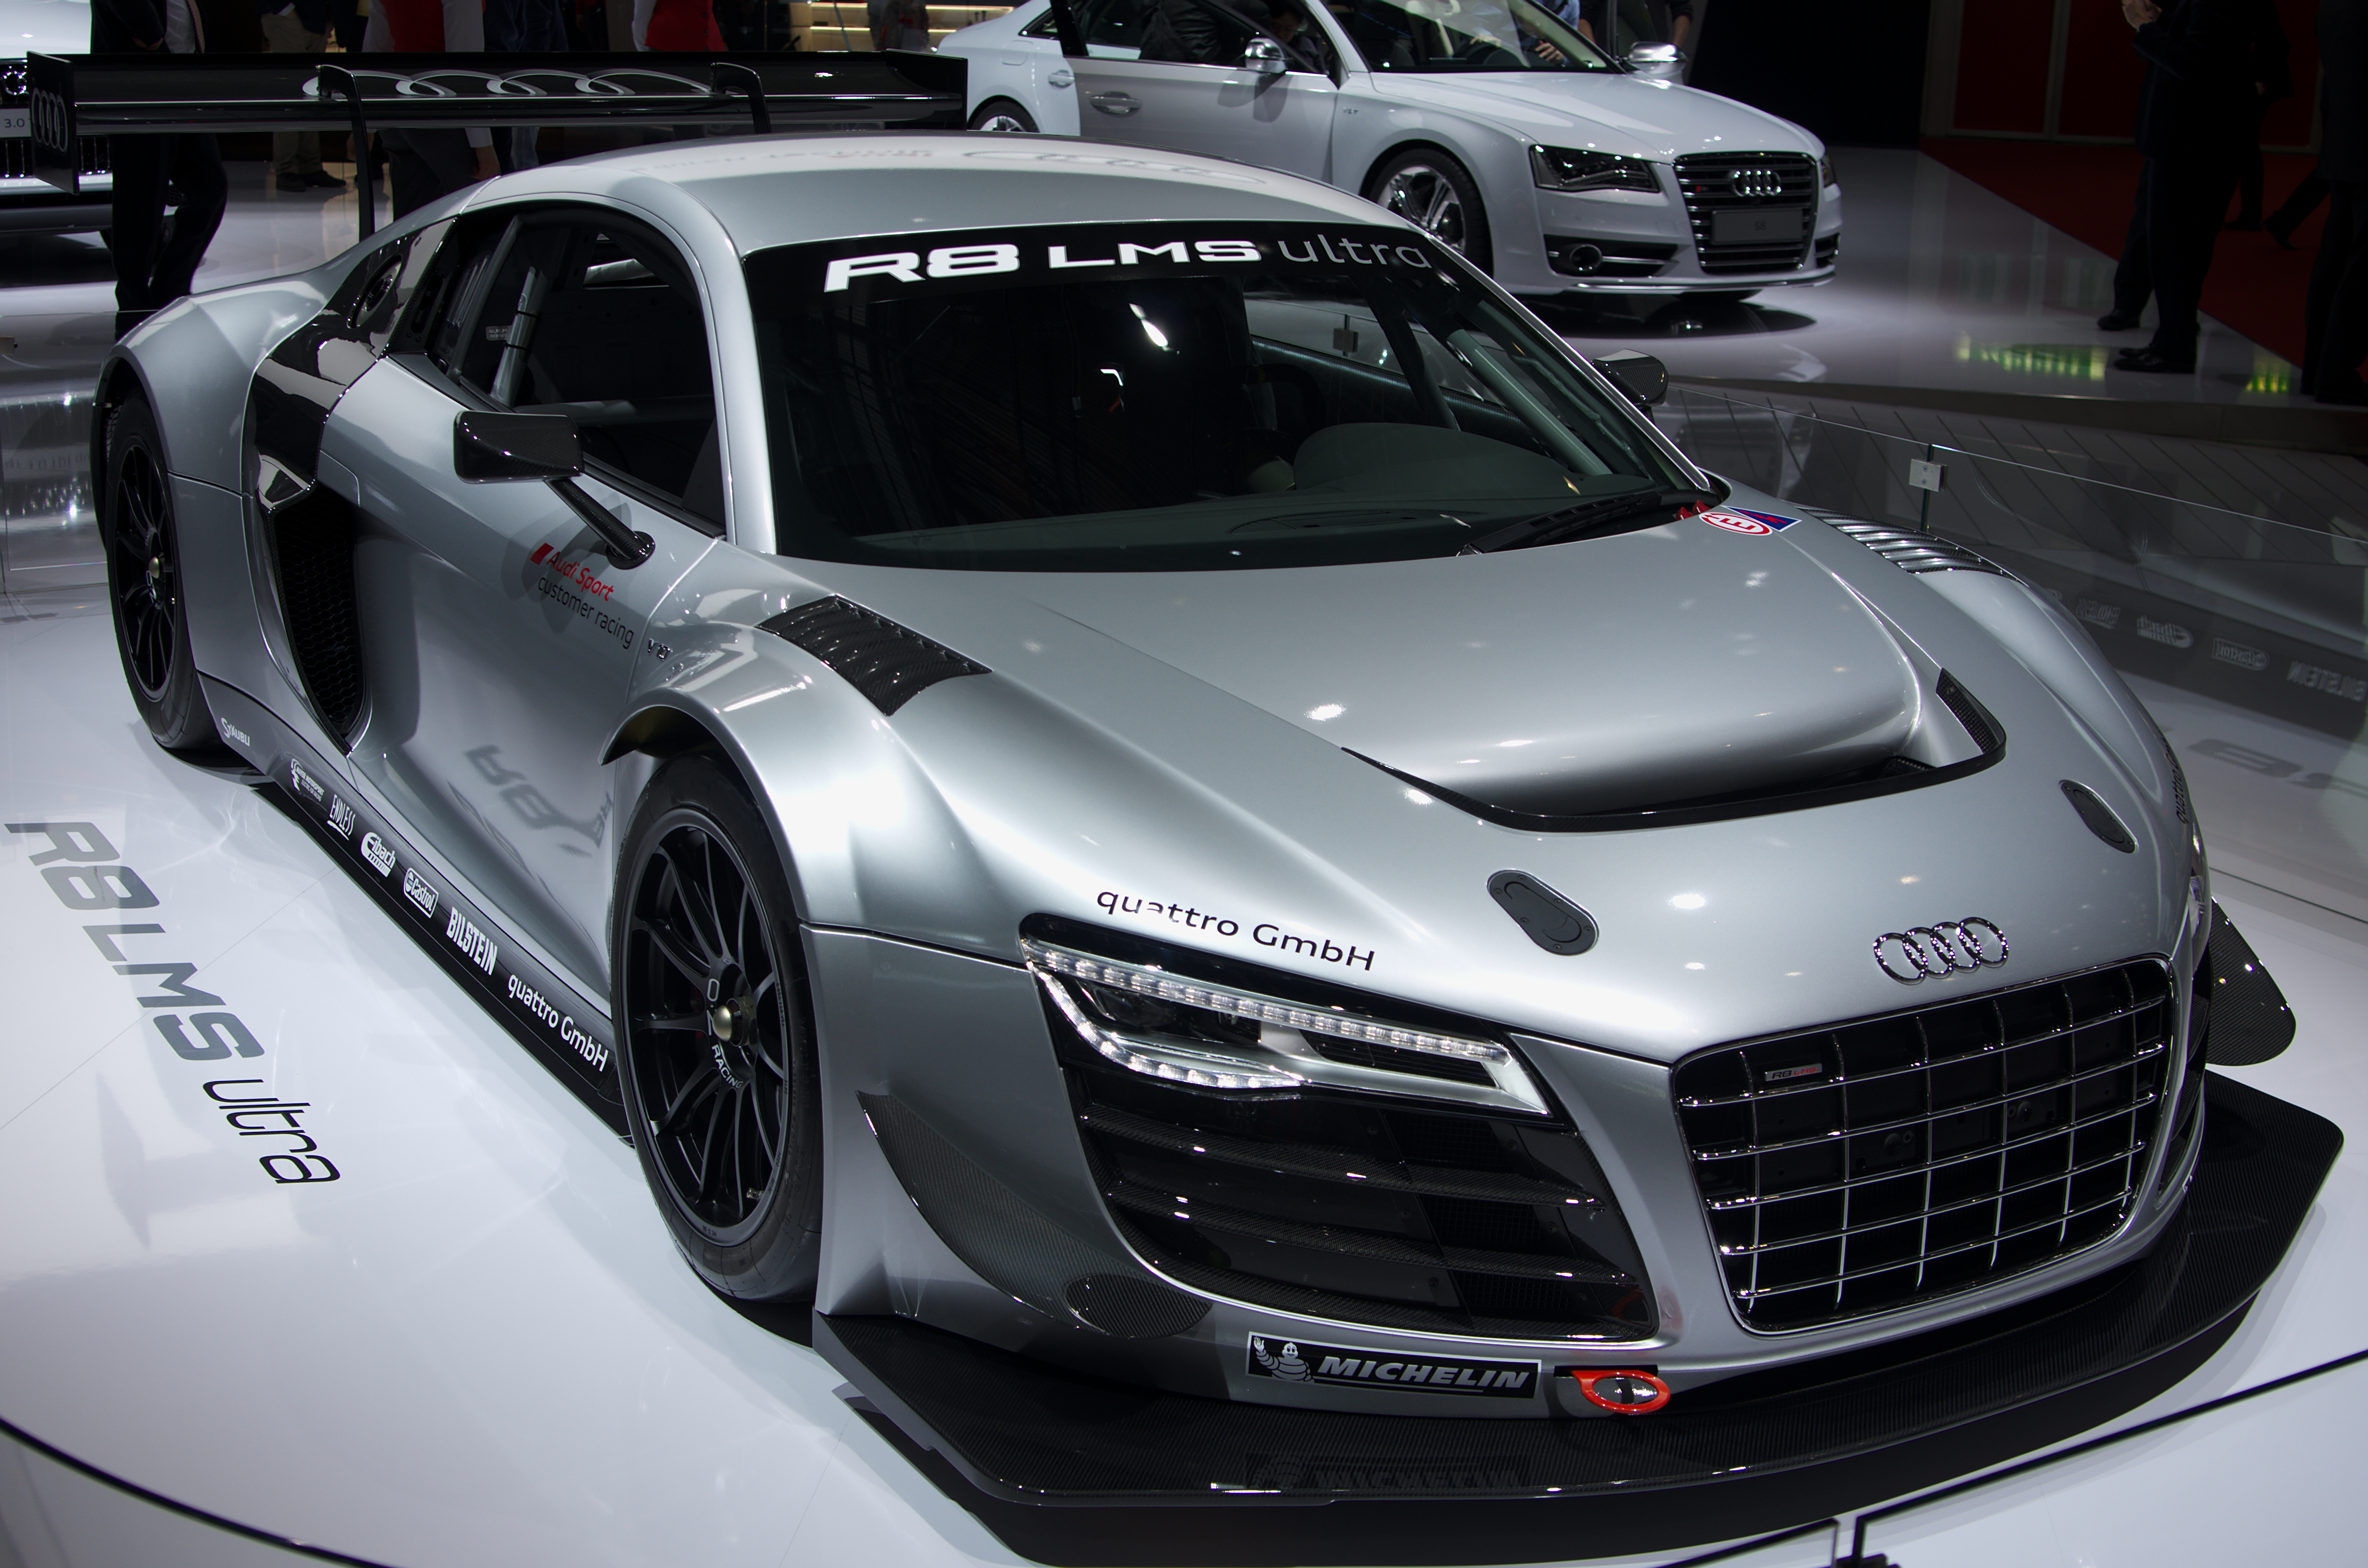 Audi r8 v10 plus engine viewing gallery